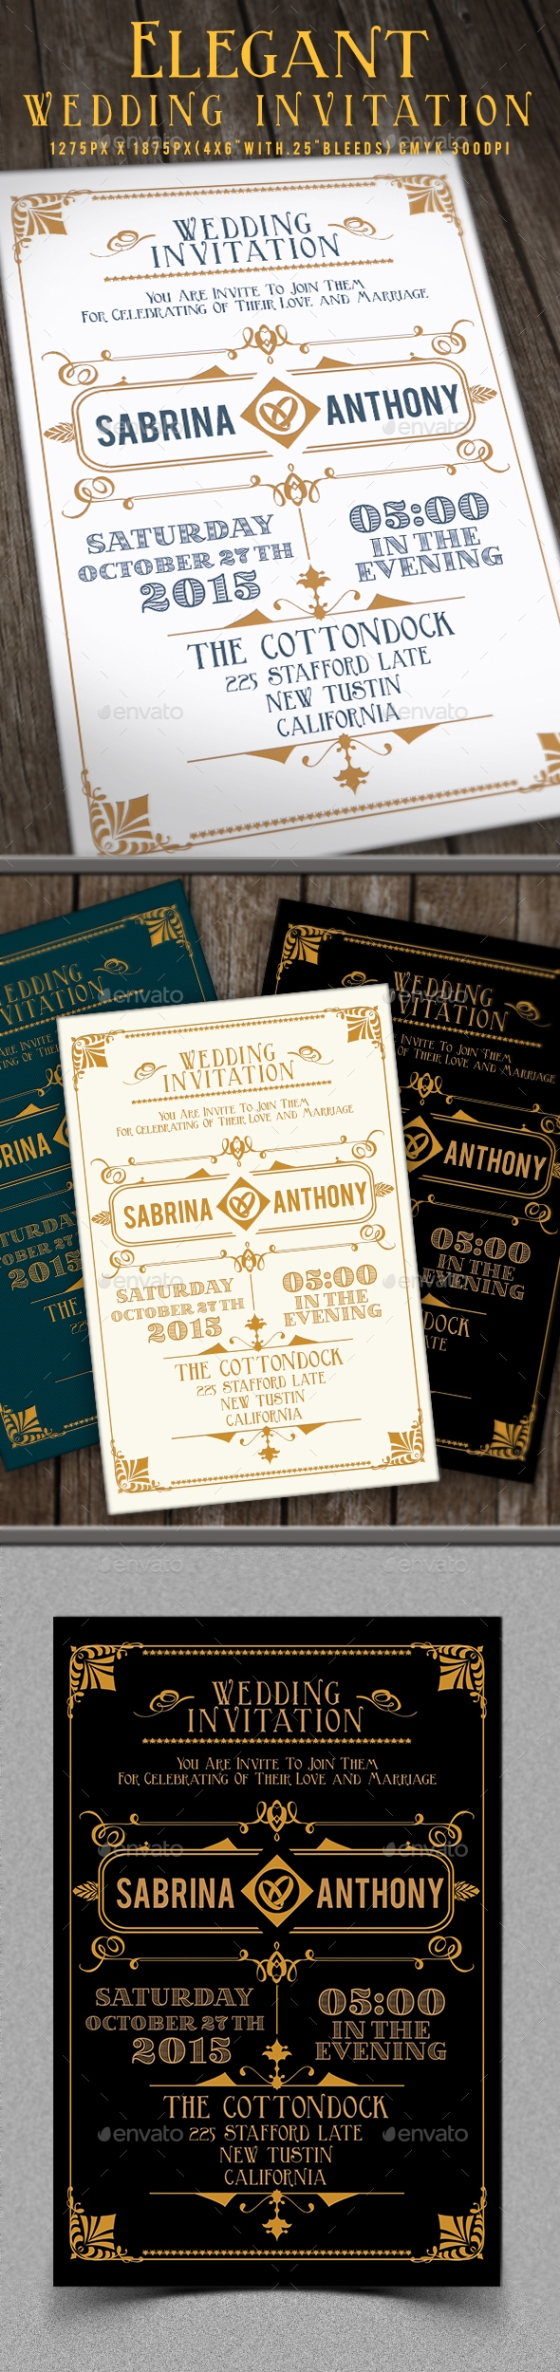 Elegant Wedding Invitation graphicriver